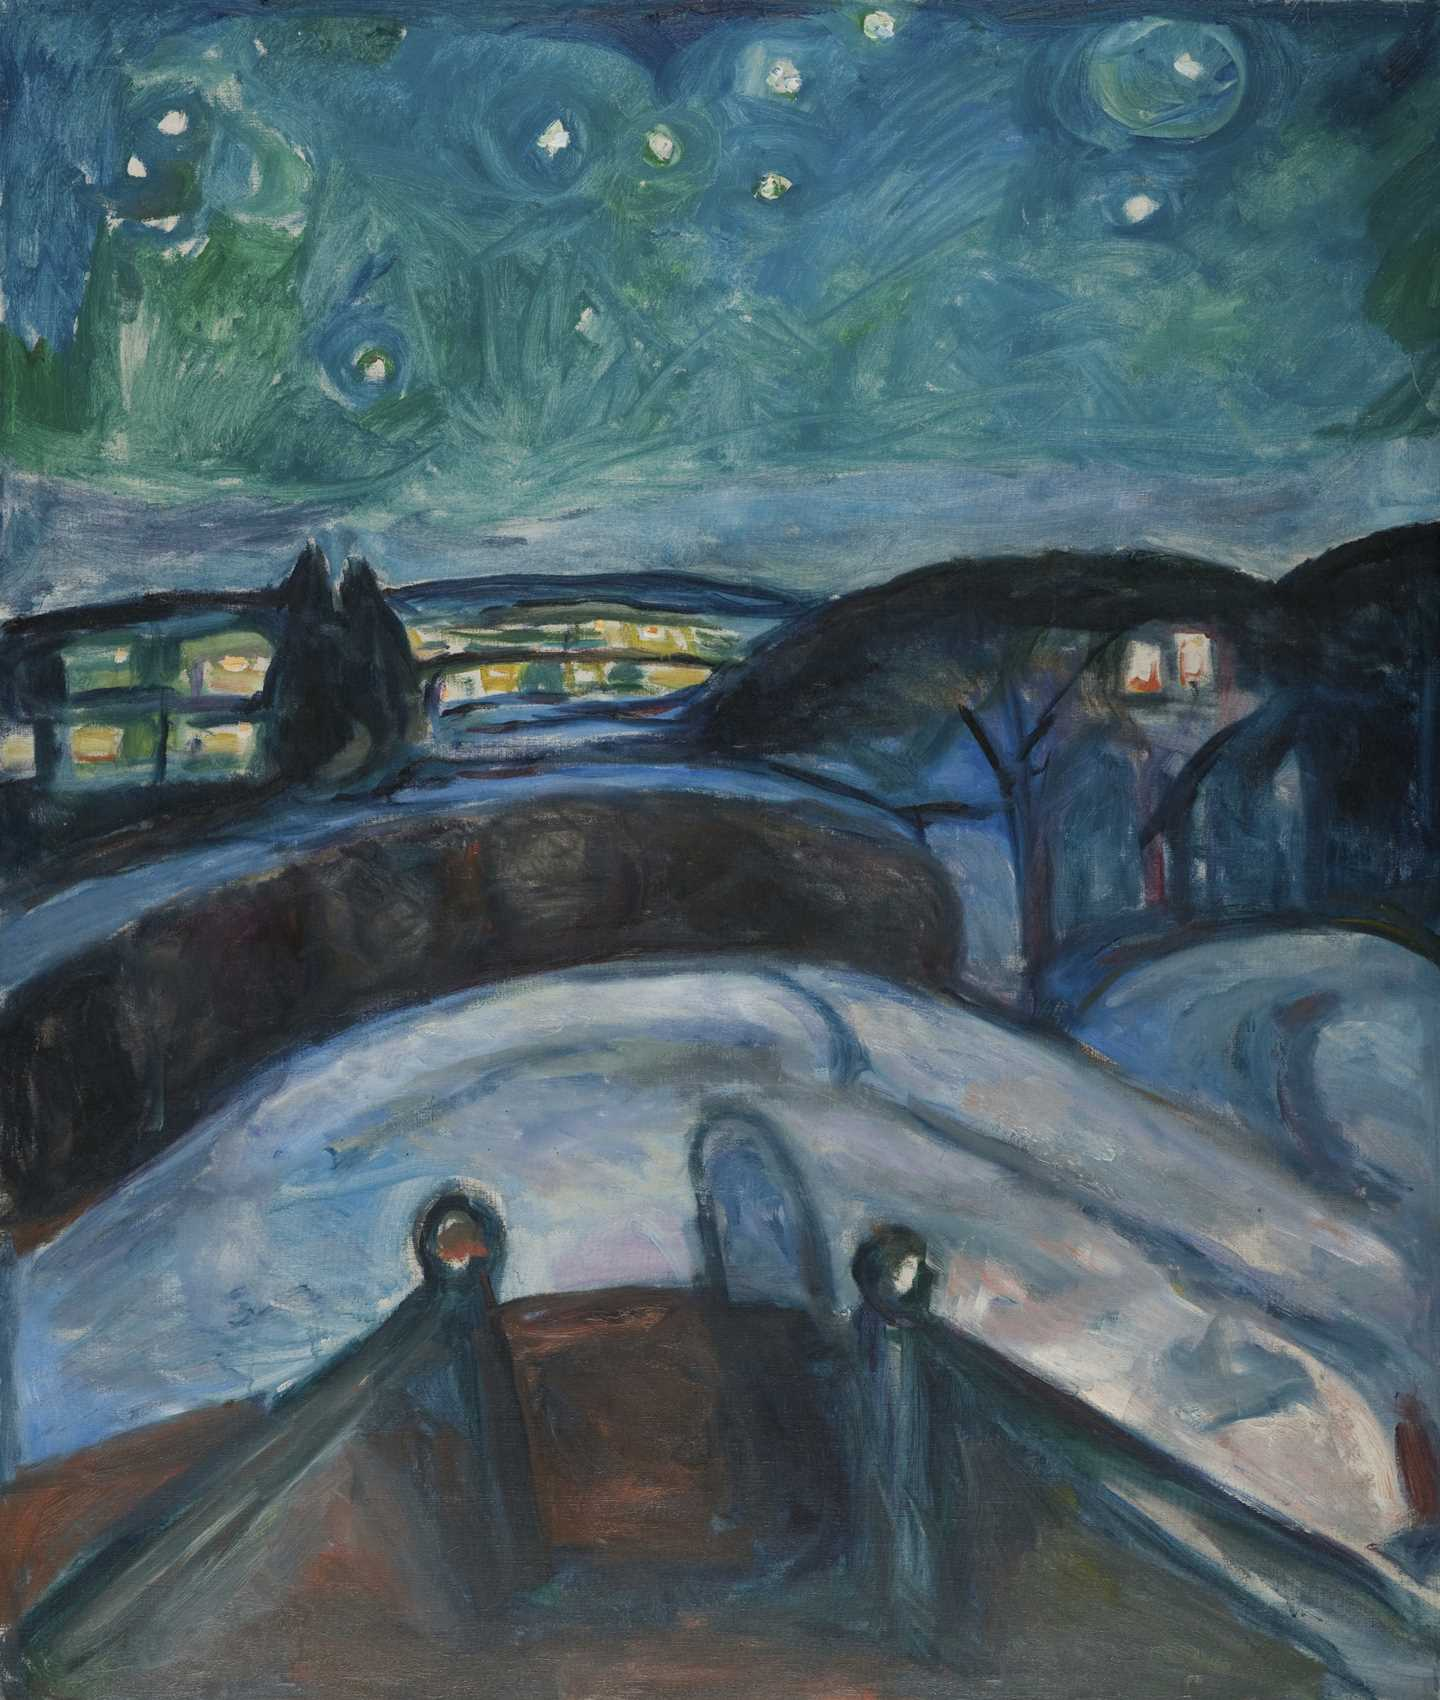 Edvard Munch: Starry Night. Oil on canvas, 1922-1924. Photo © Munchmuseet